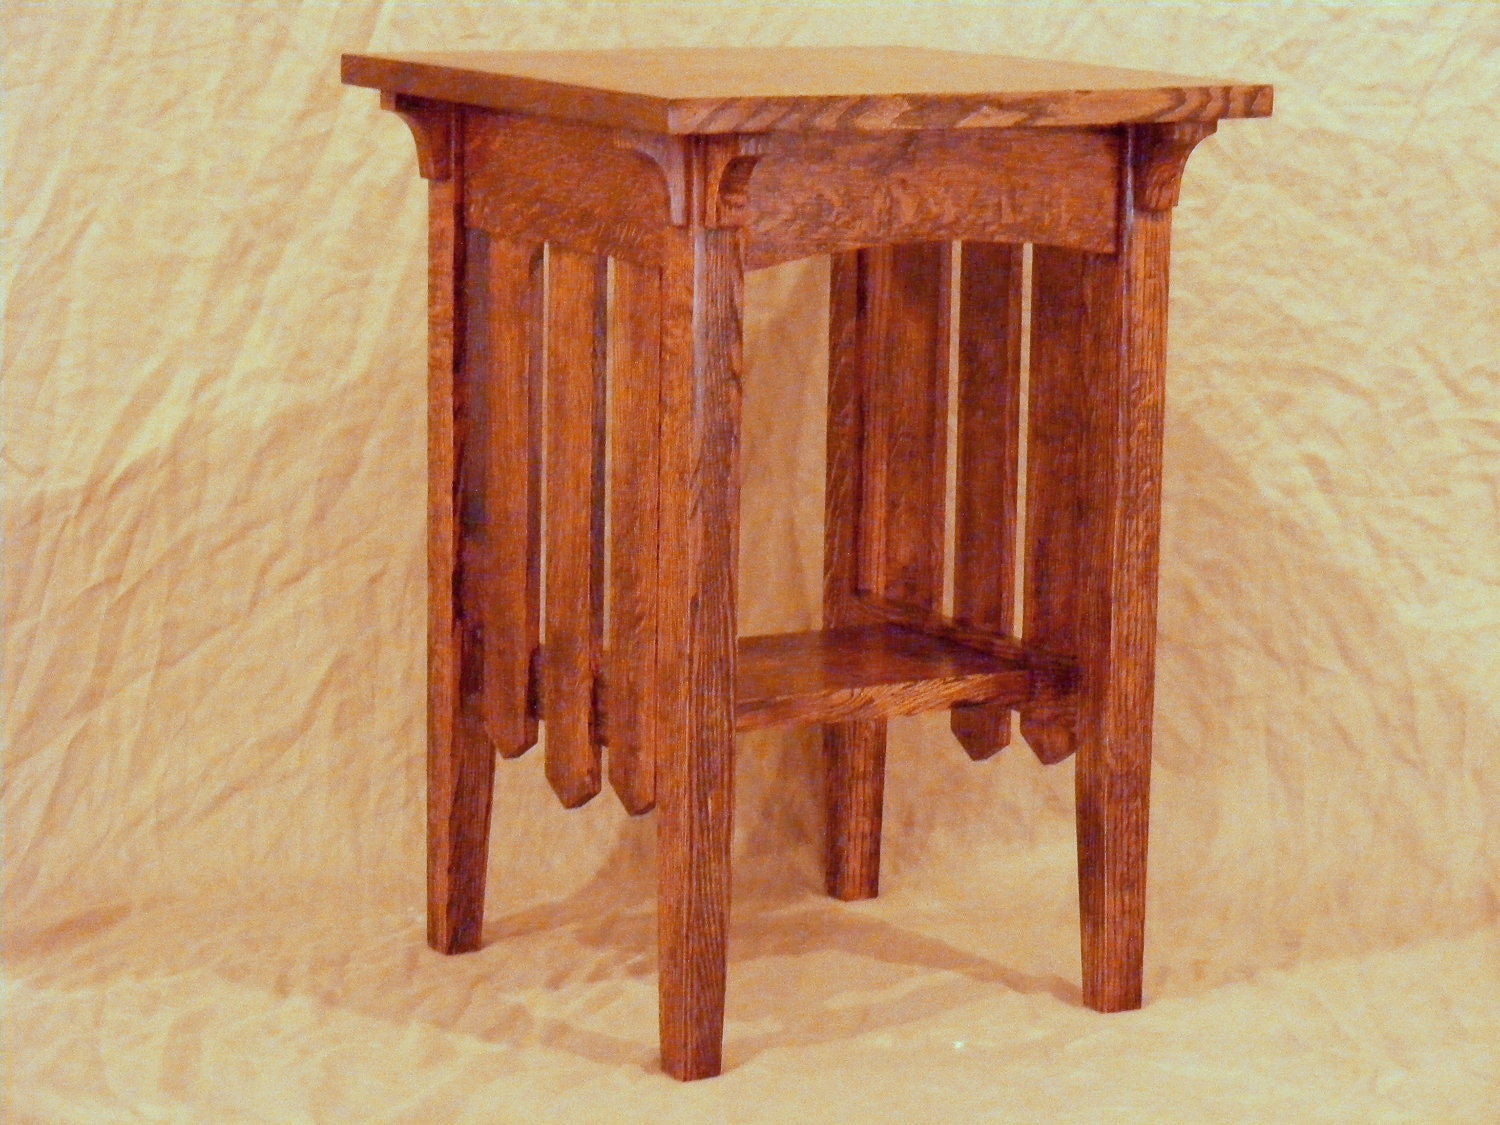 Mission Oak Furniture Arts & Crafts Style Lamp End Table Hand